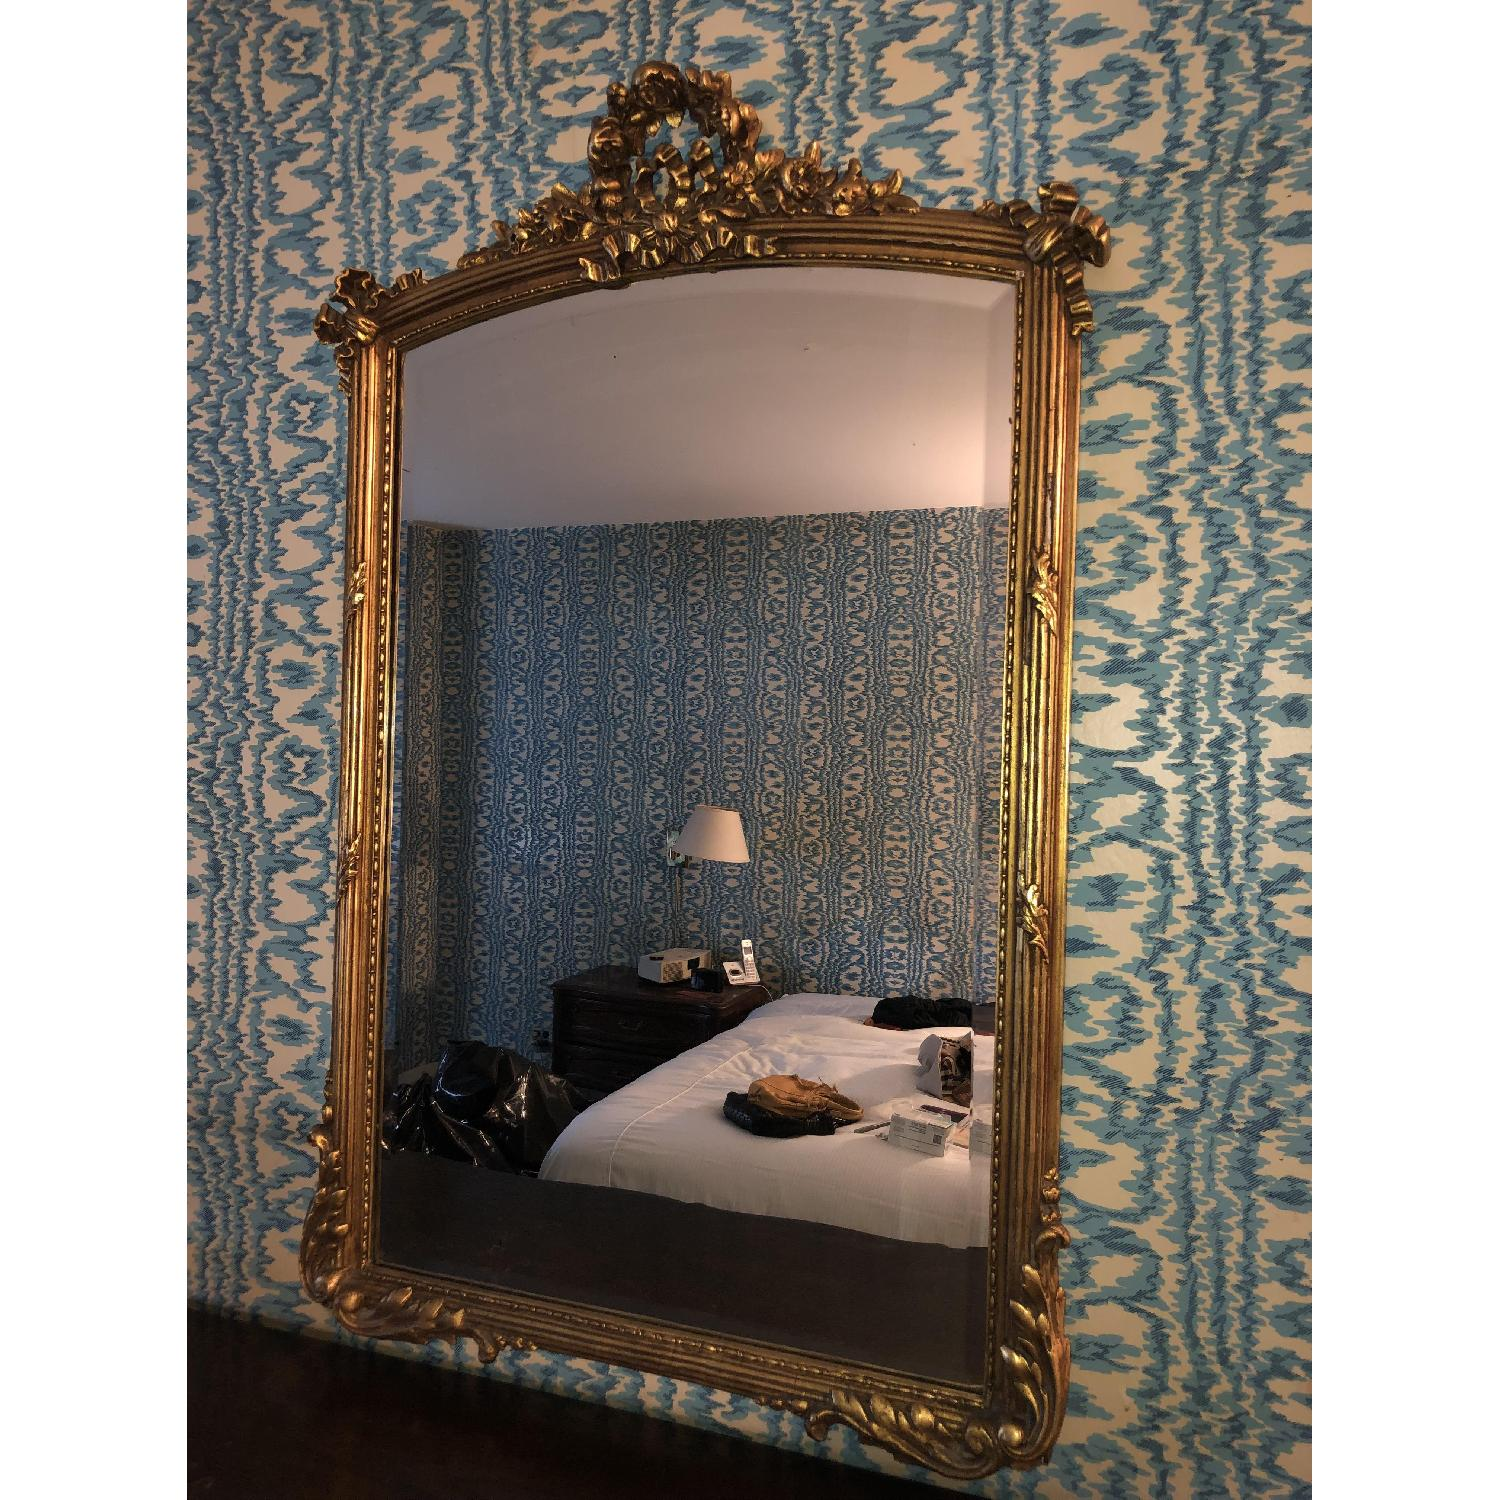 antique wall mirrors quirky wall antique gold glass wall mirror0 mirror aptdeco